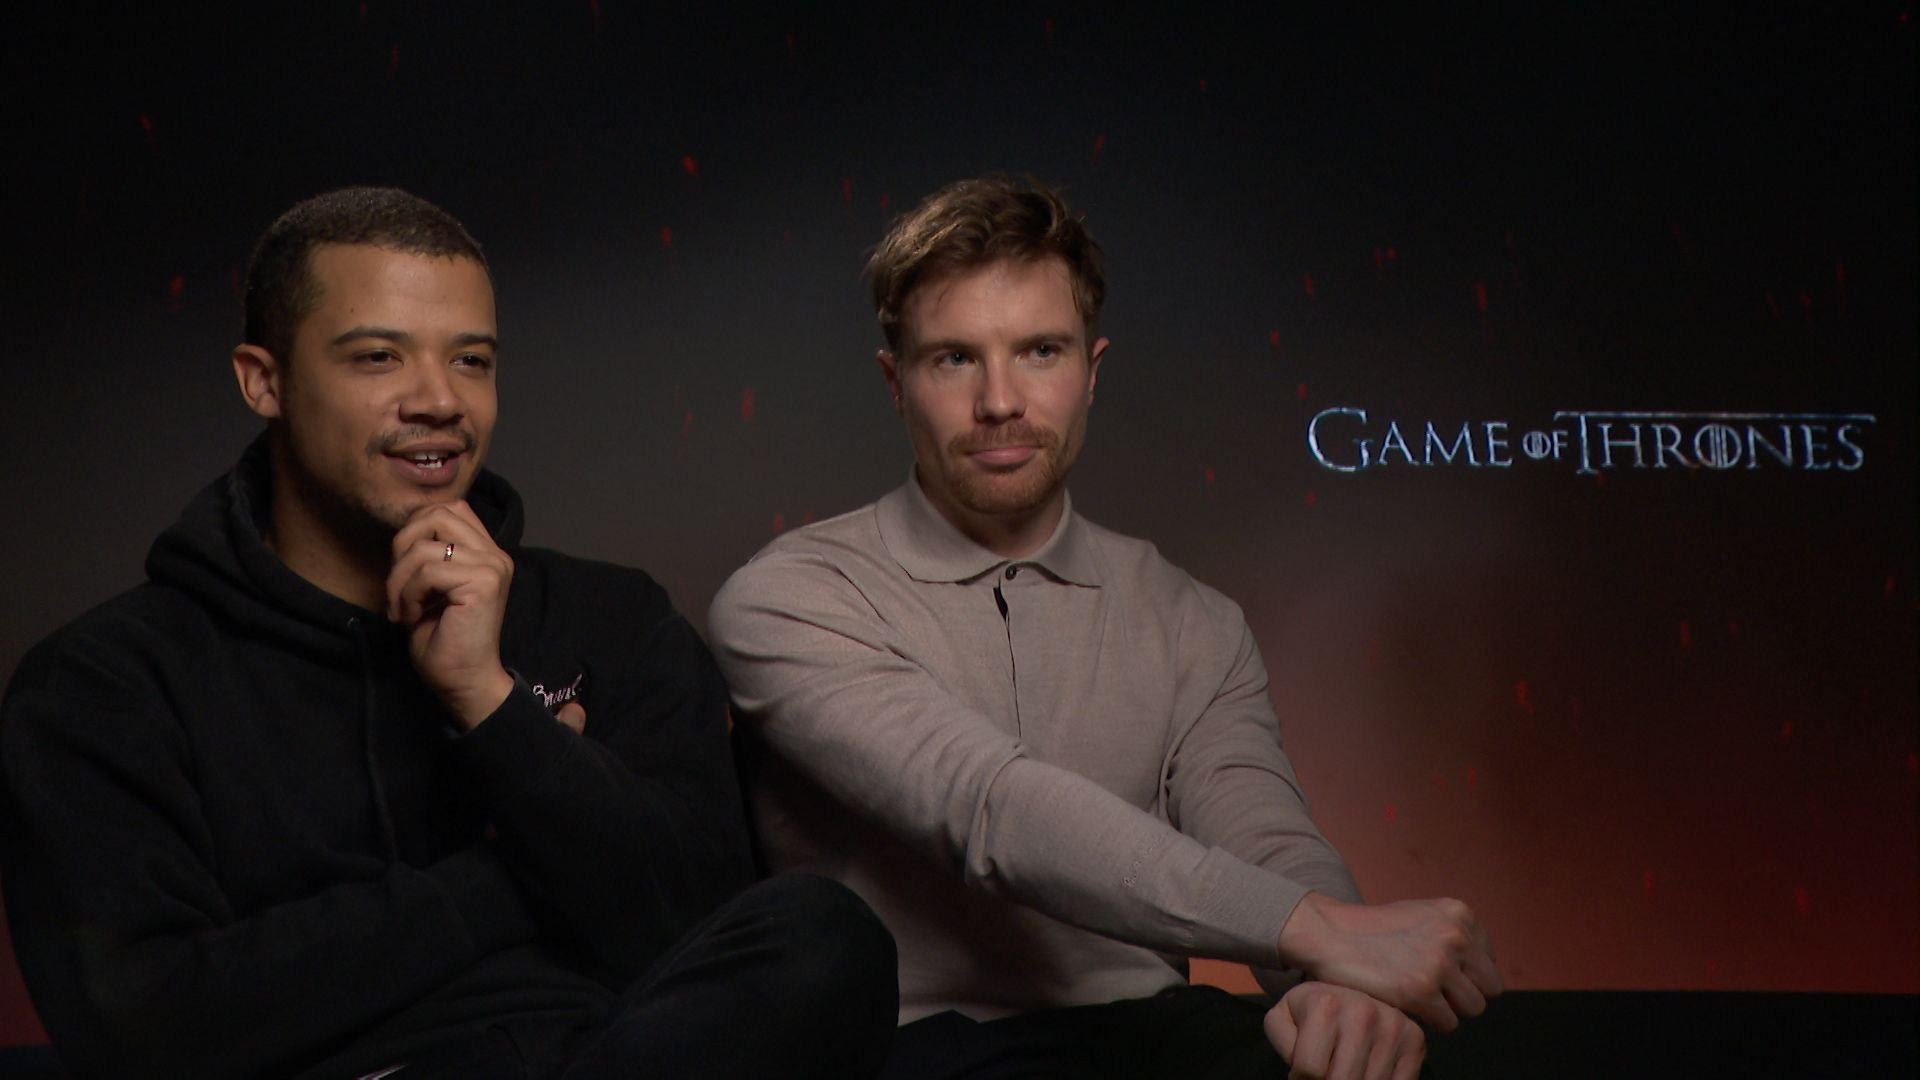 Gendry And Grey Worm Is The Spin-Off 'Game Of Thrones' Needs